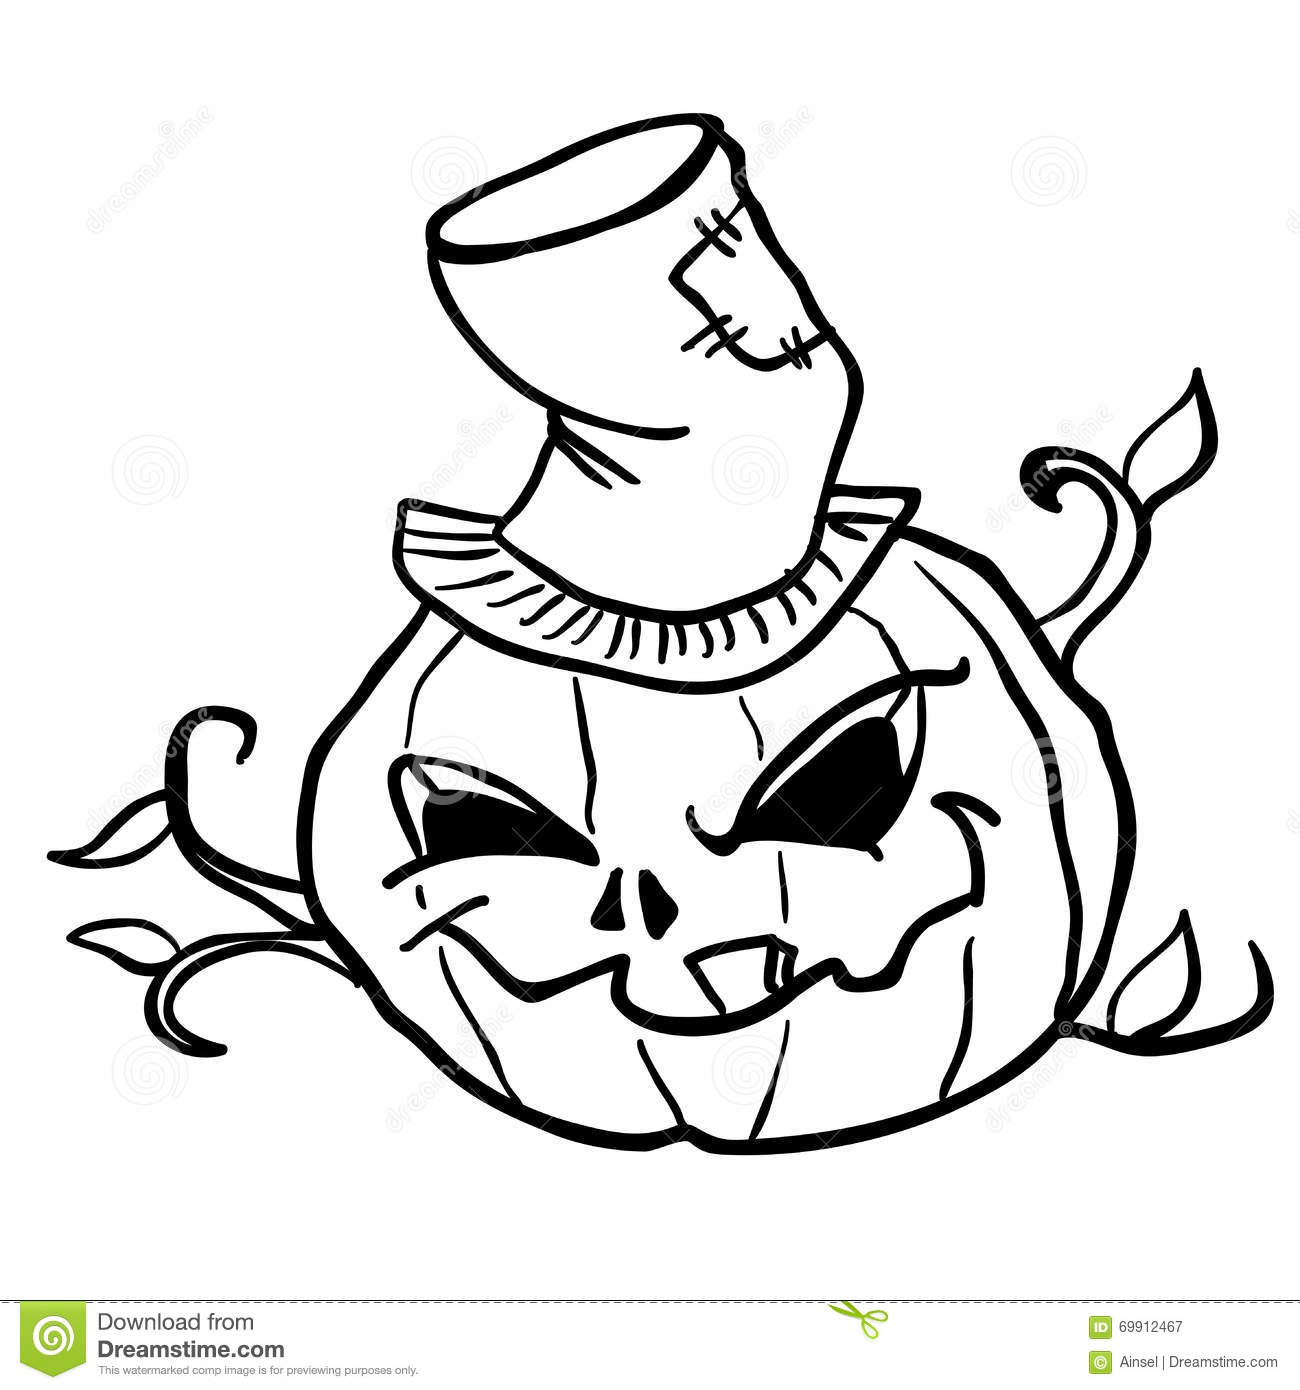 Black And White Happy Halloween Pumpkin Cartoon Mascot ... |Cartoon Black And White Pumkin